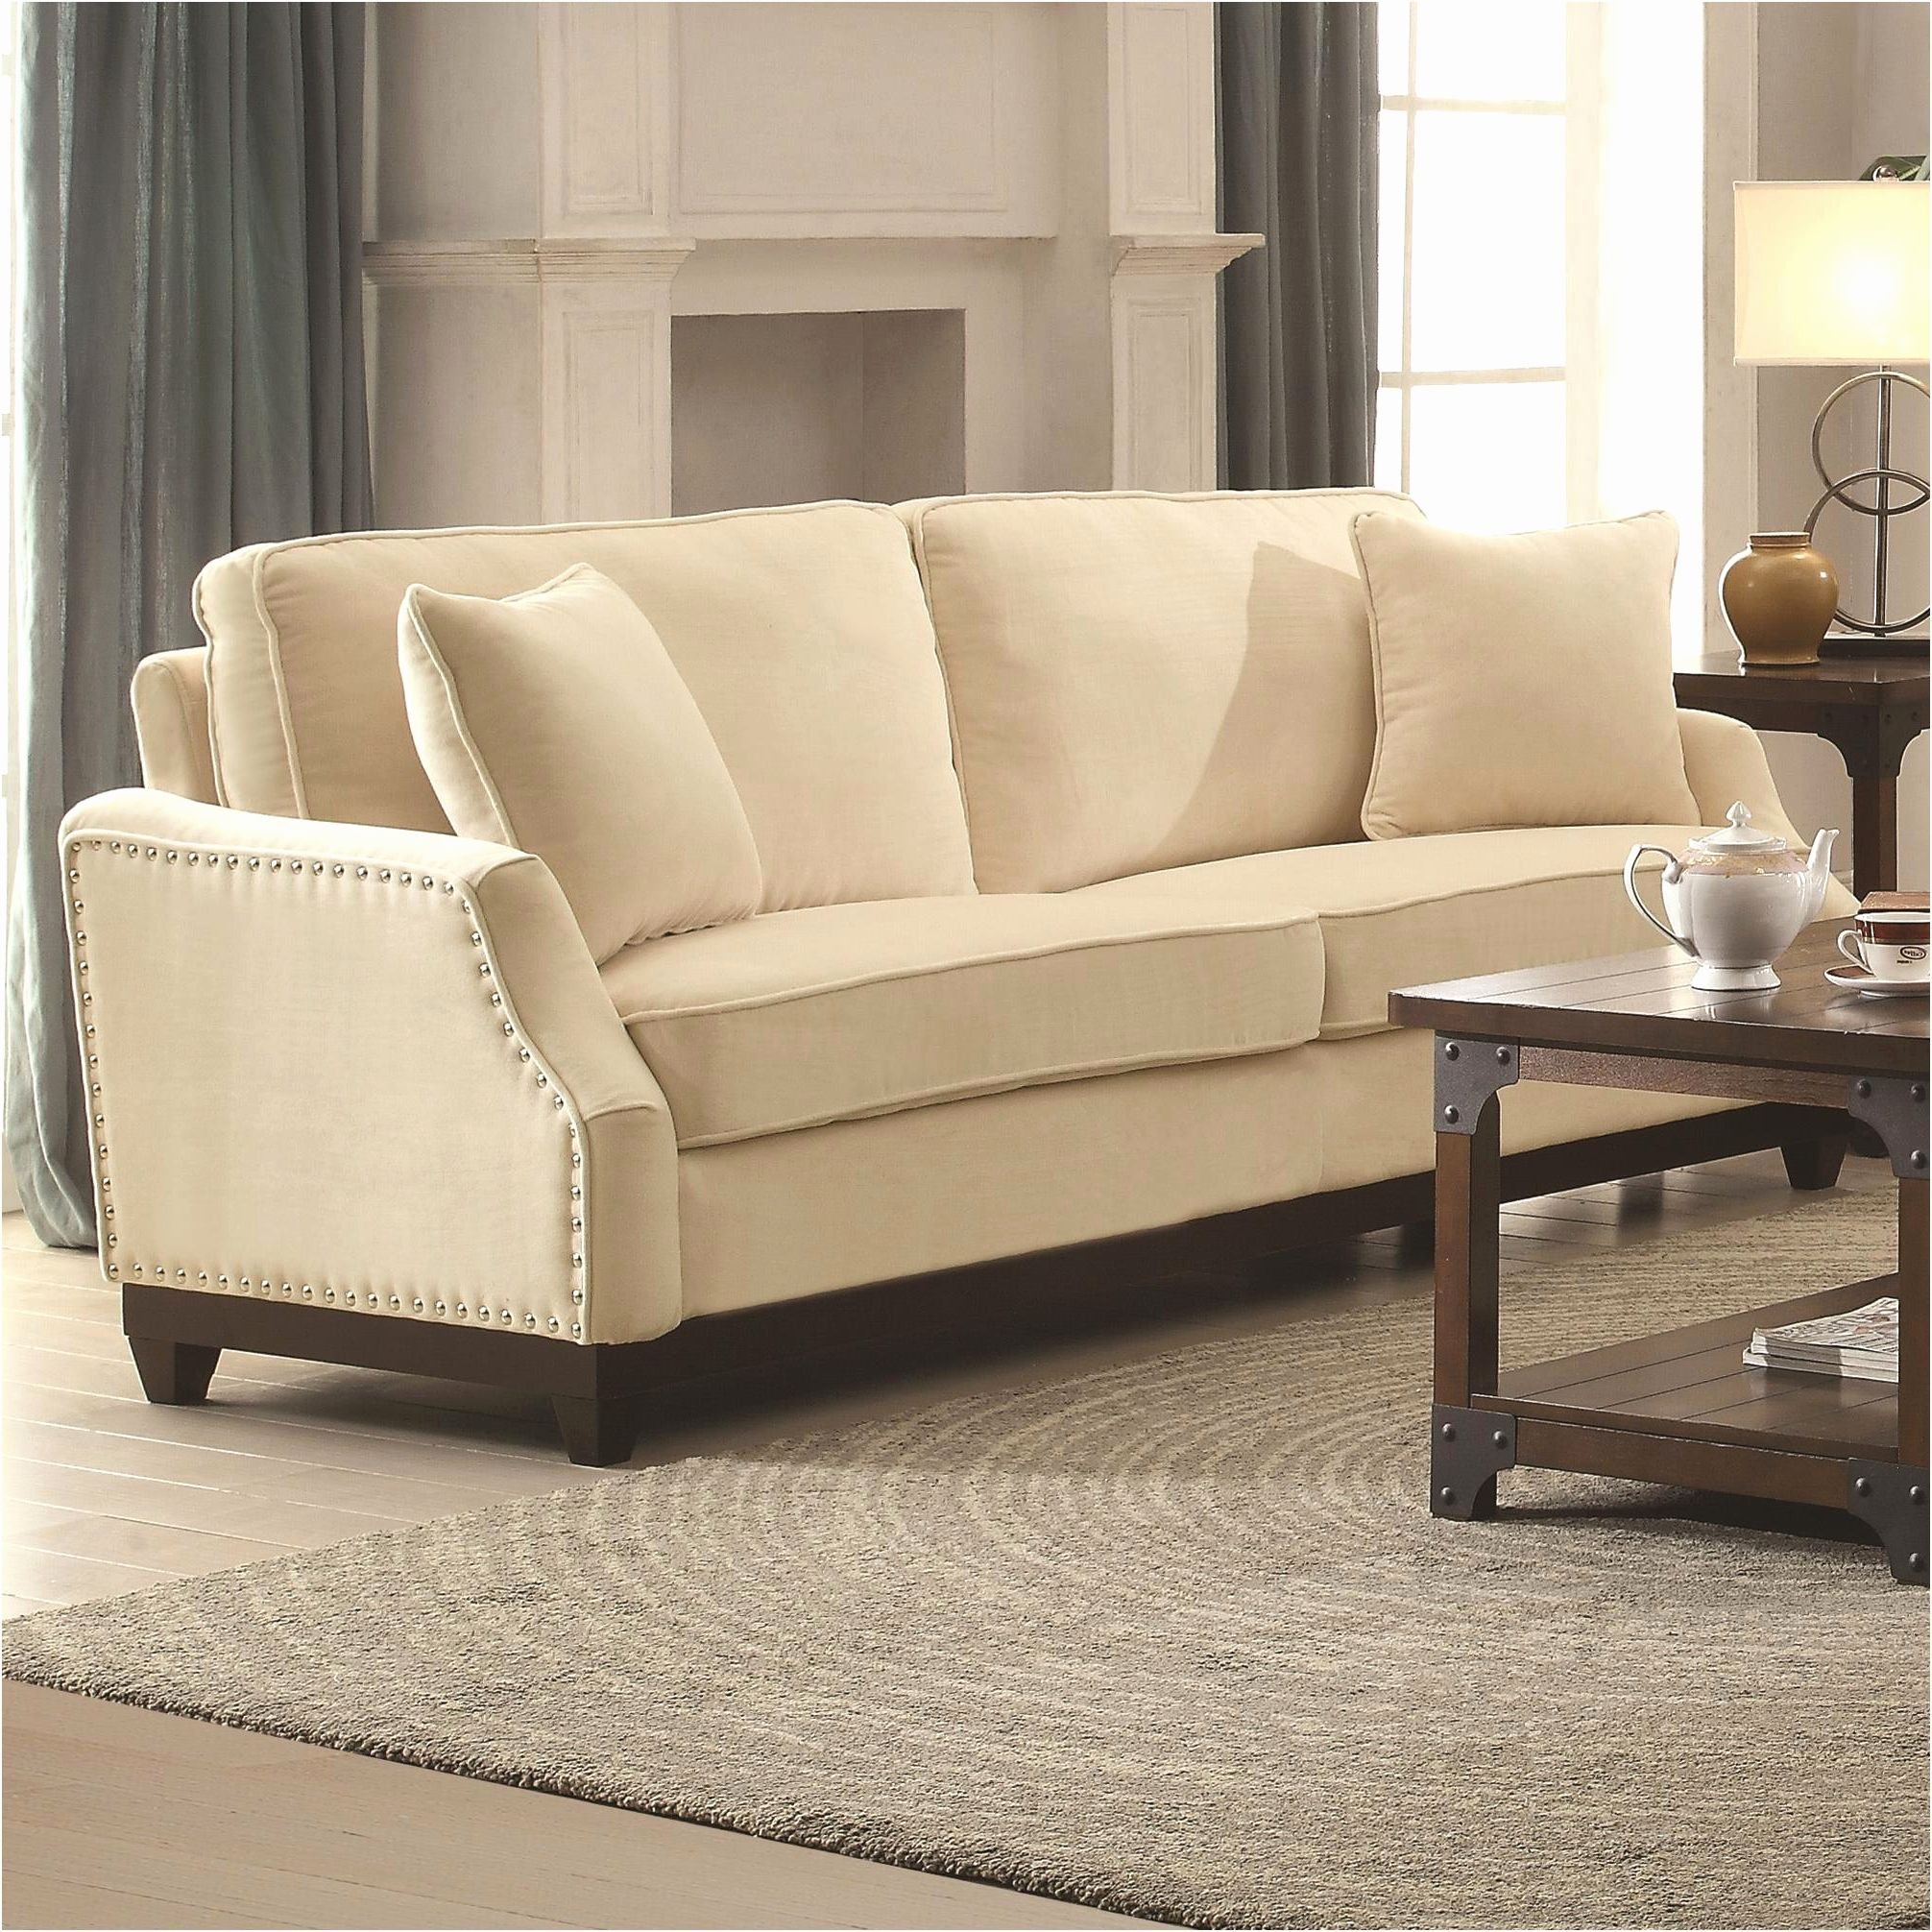 Cape Town Sofa Reviews Camerich Review Cream Leather With Nailheads Baci Living Room